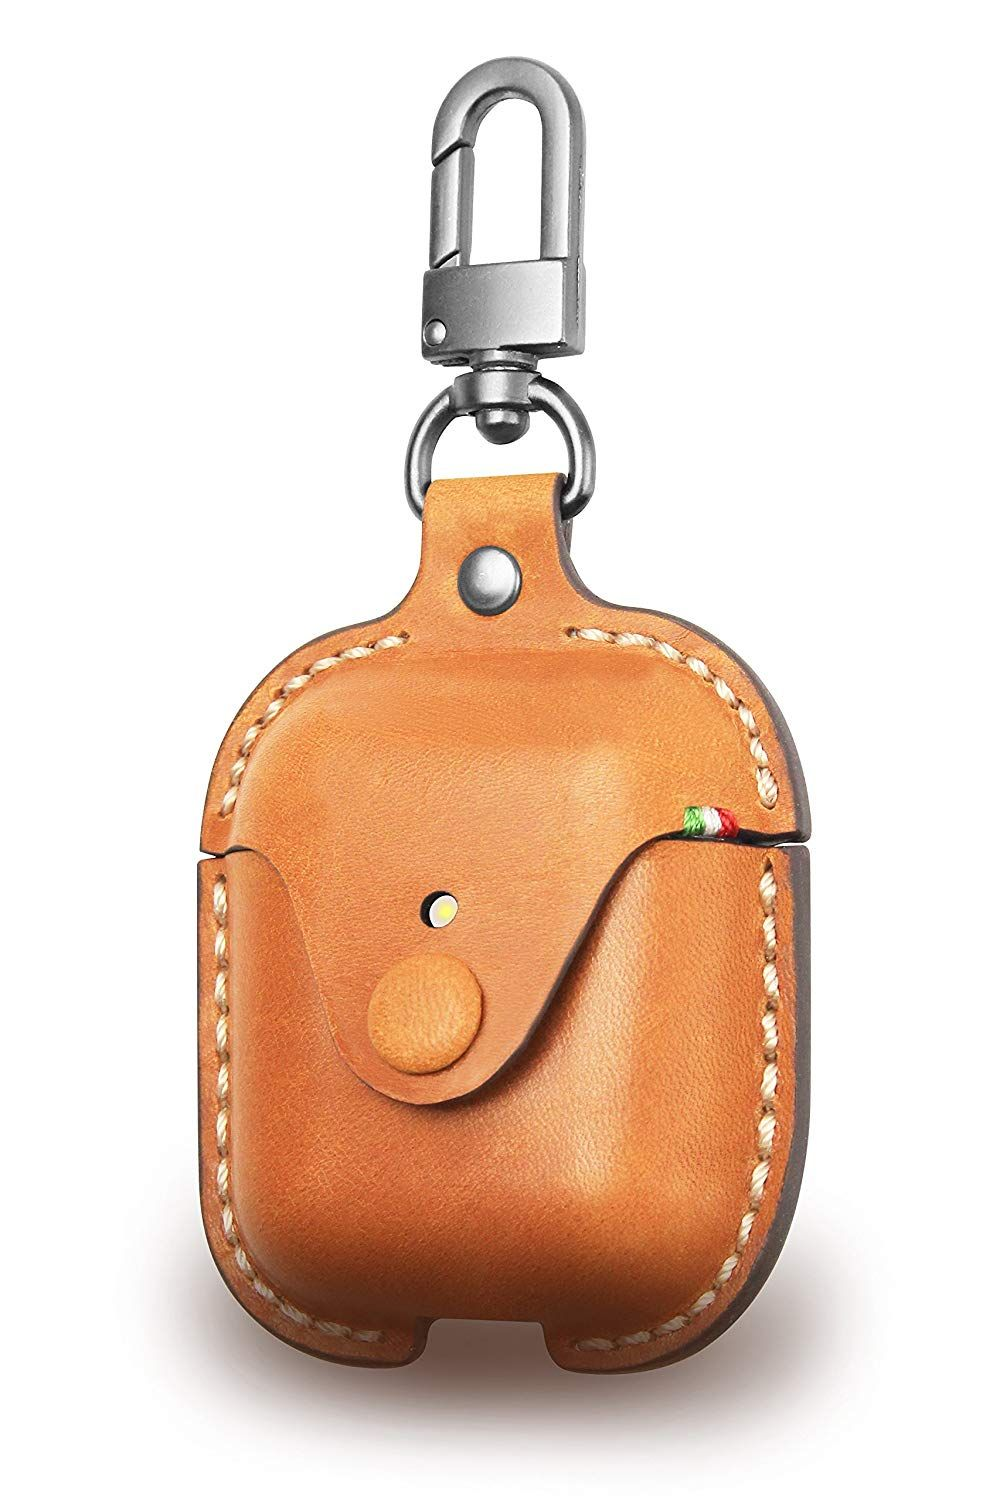 Amazon Com Cozistyle Genuine Premium Leather Case For Apple Airpods Anti Lost Snap Full And Ultimate Leather Handbag Patterns Leather Keyring Leather Keychain